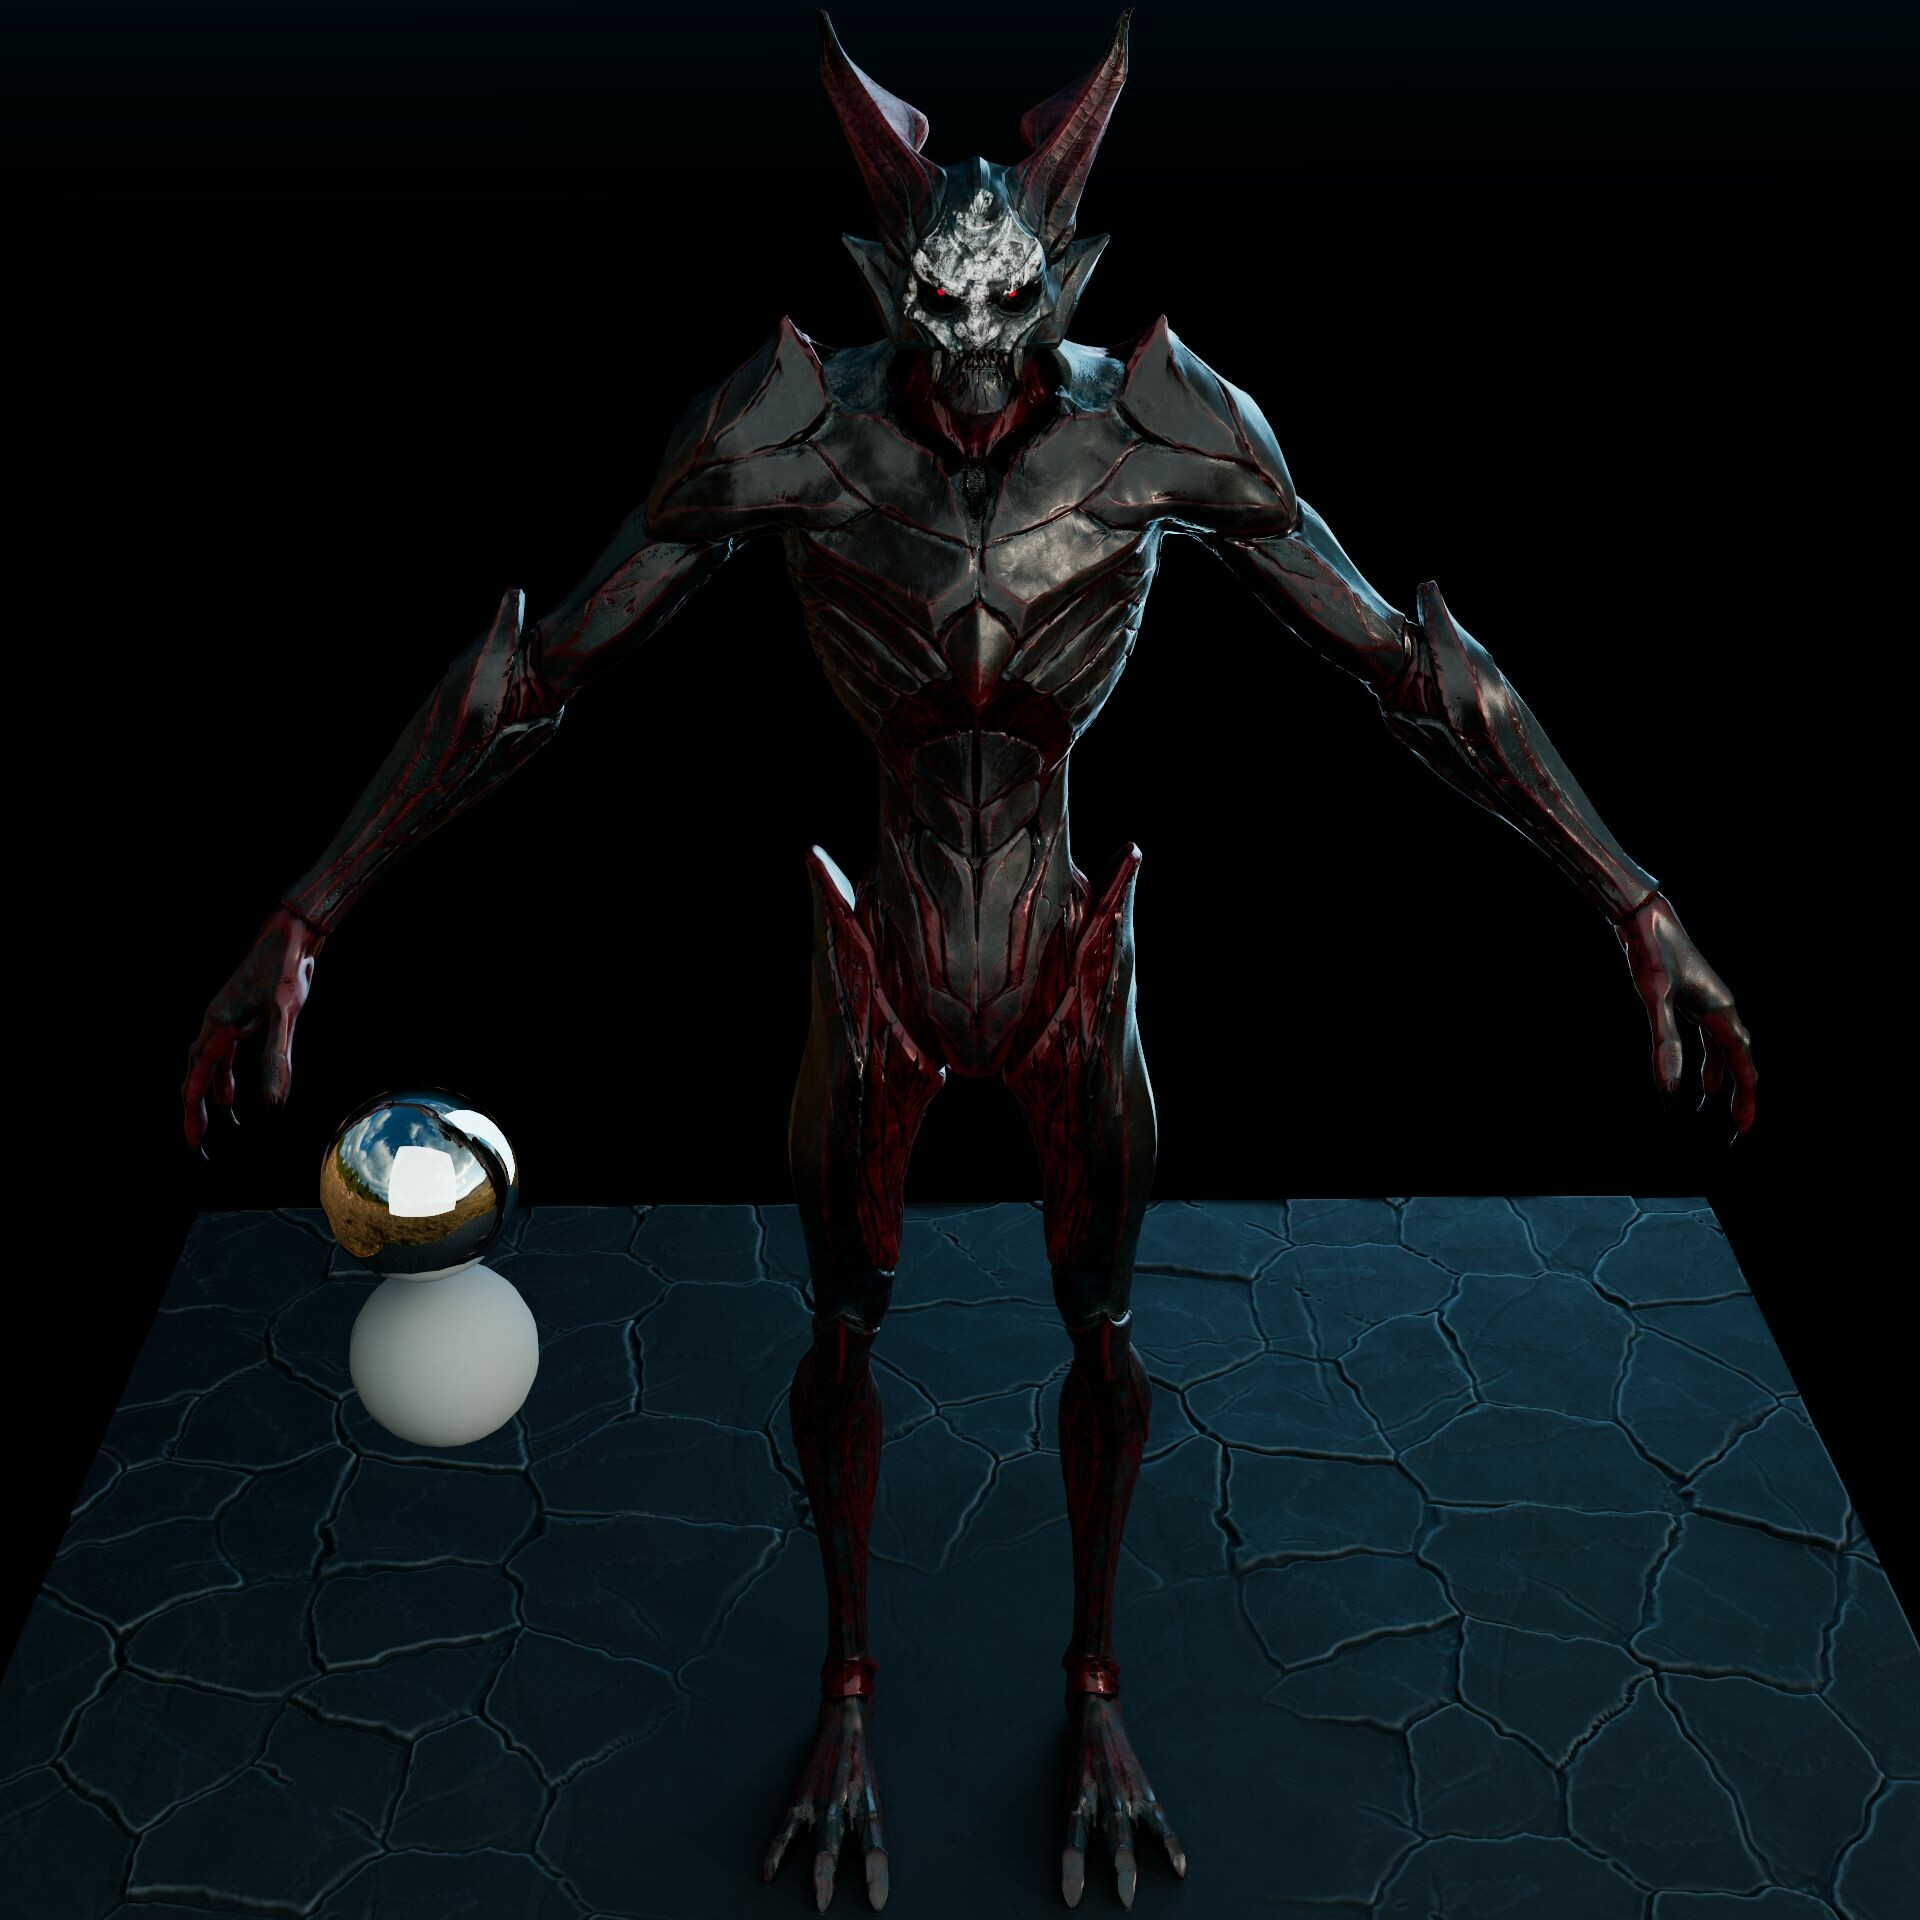 The Final demon Texture (WarPaint Variation)